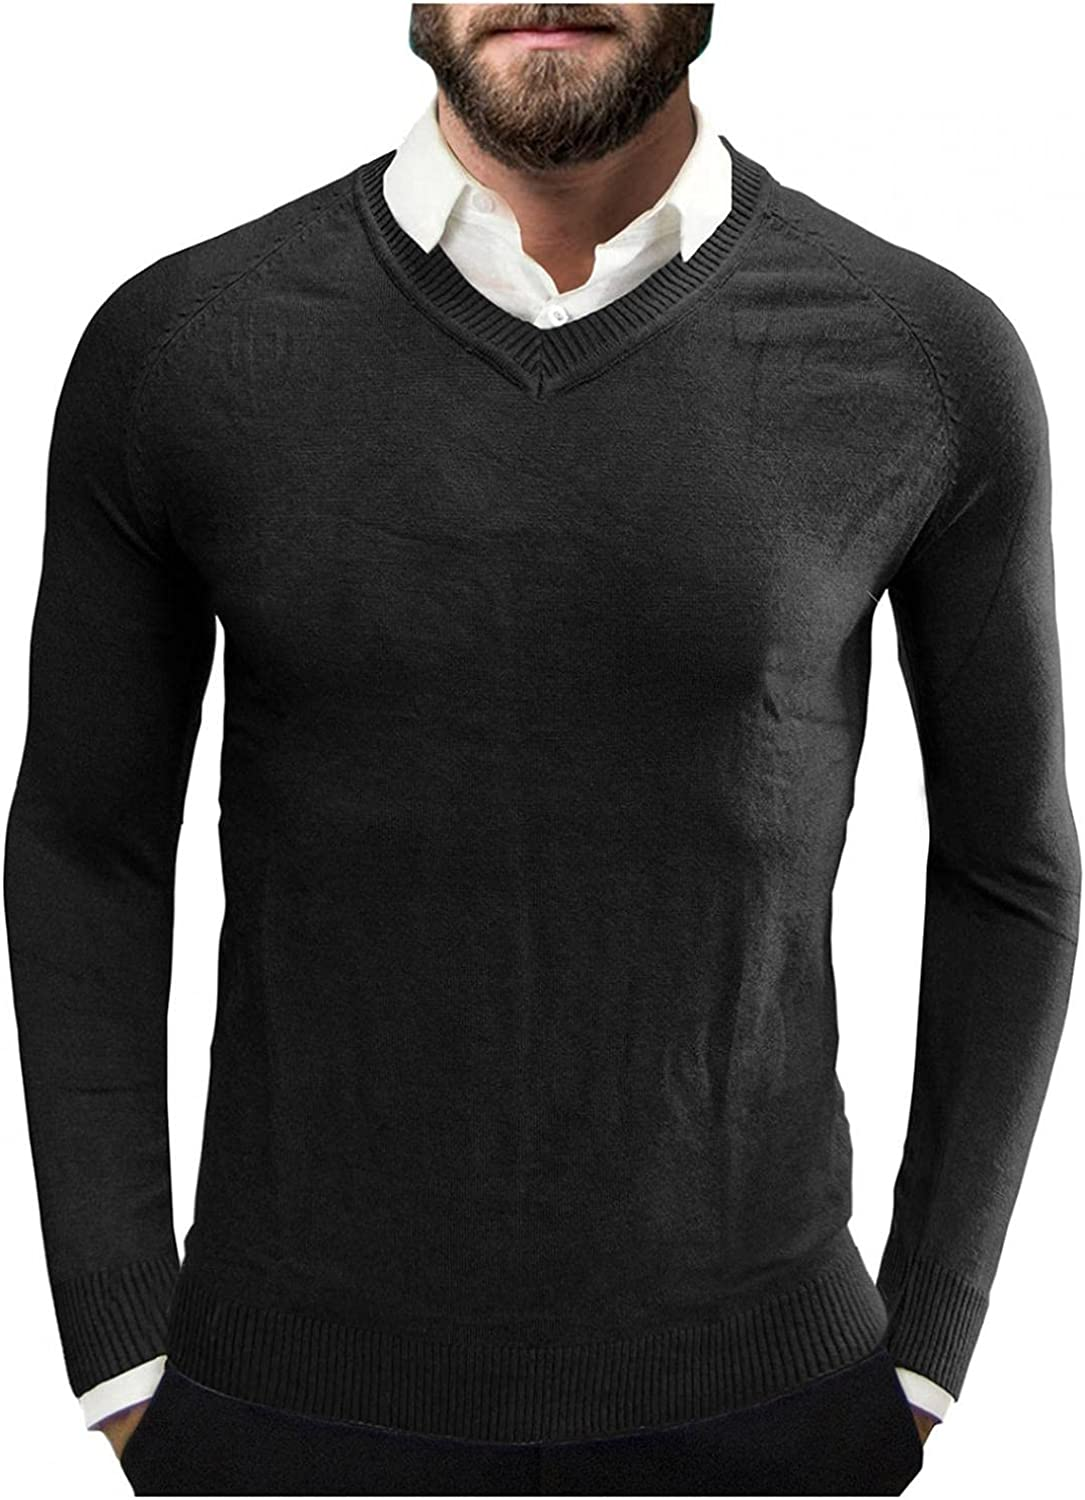 Burband Mens Stretch Cotton V Neck Thermal Sweaters Lightweight Slim Fit Soft Merino Wool Classic Work Pullover Sweaters